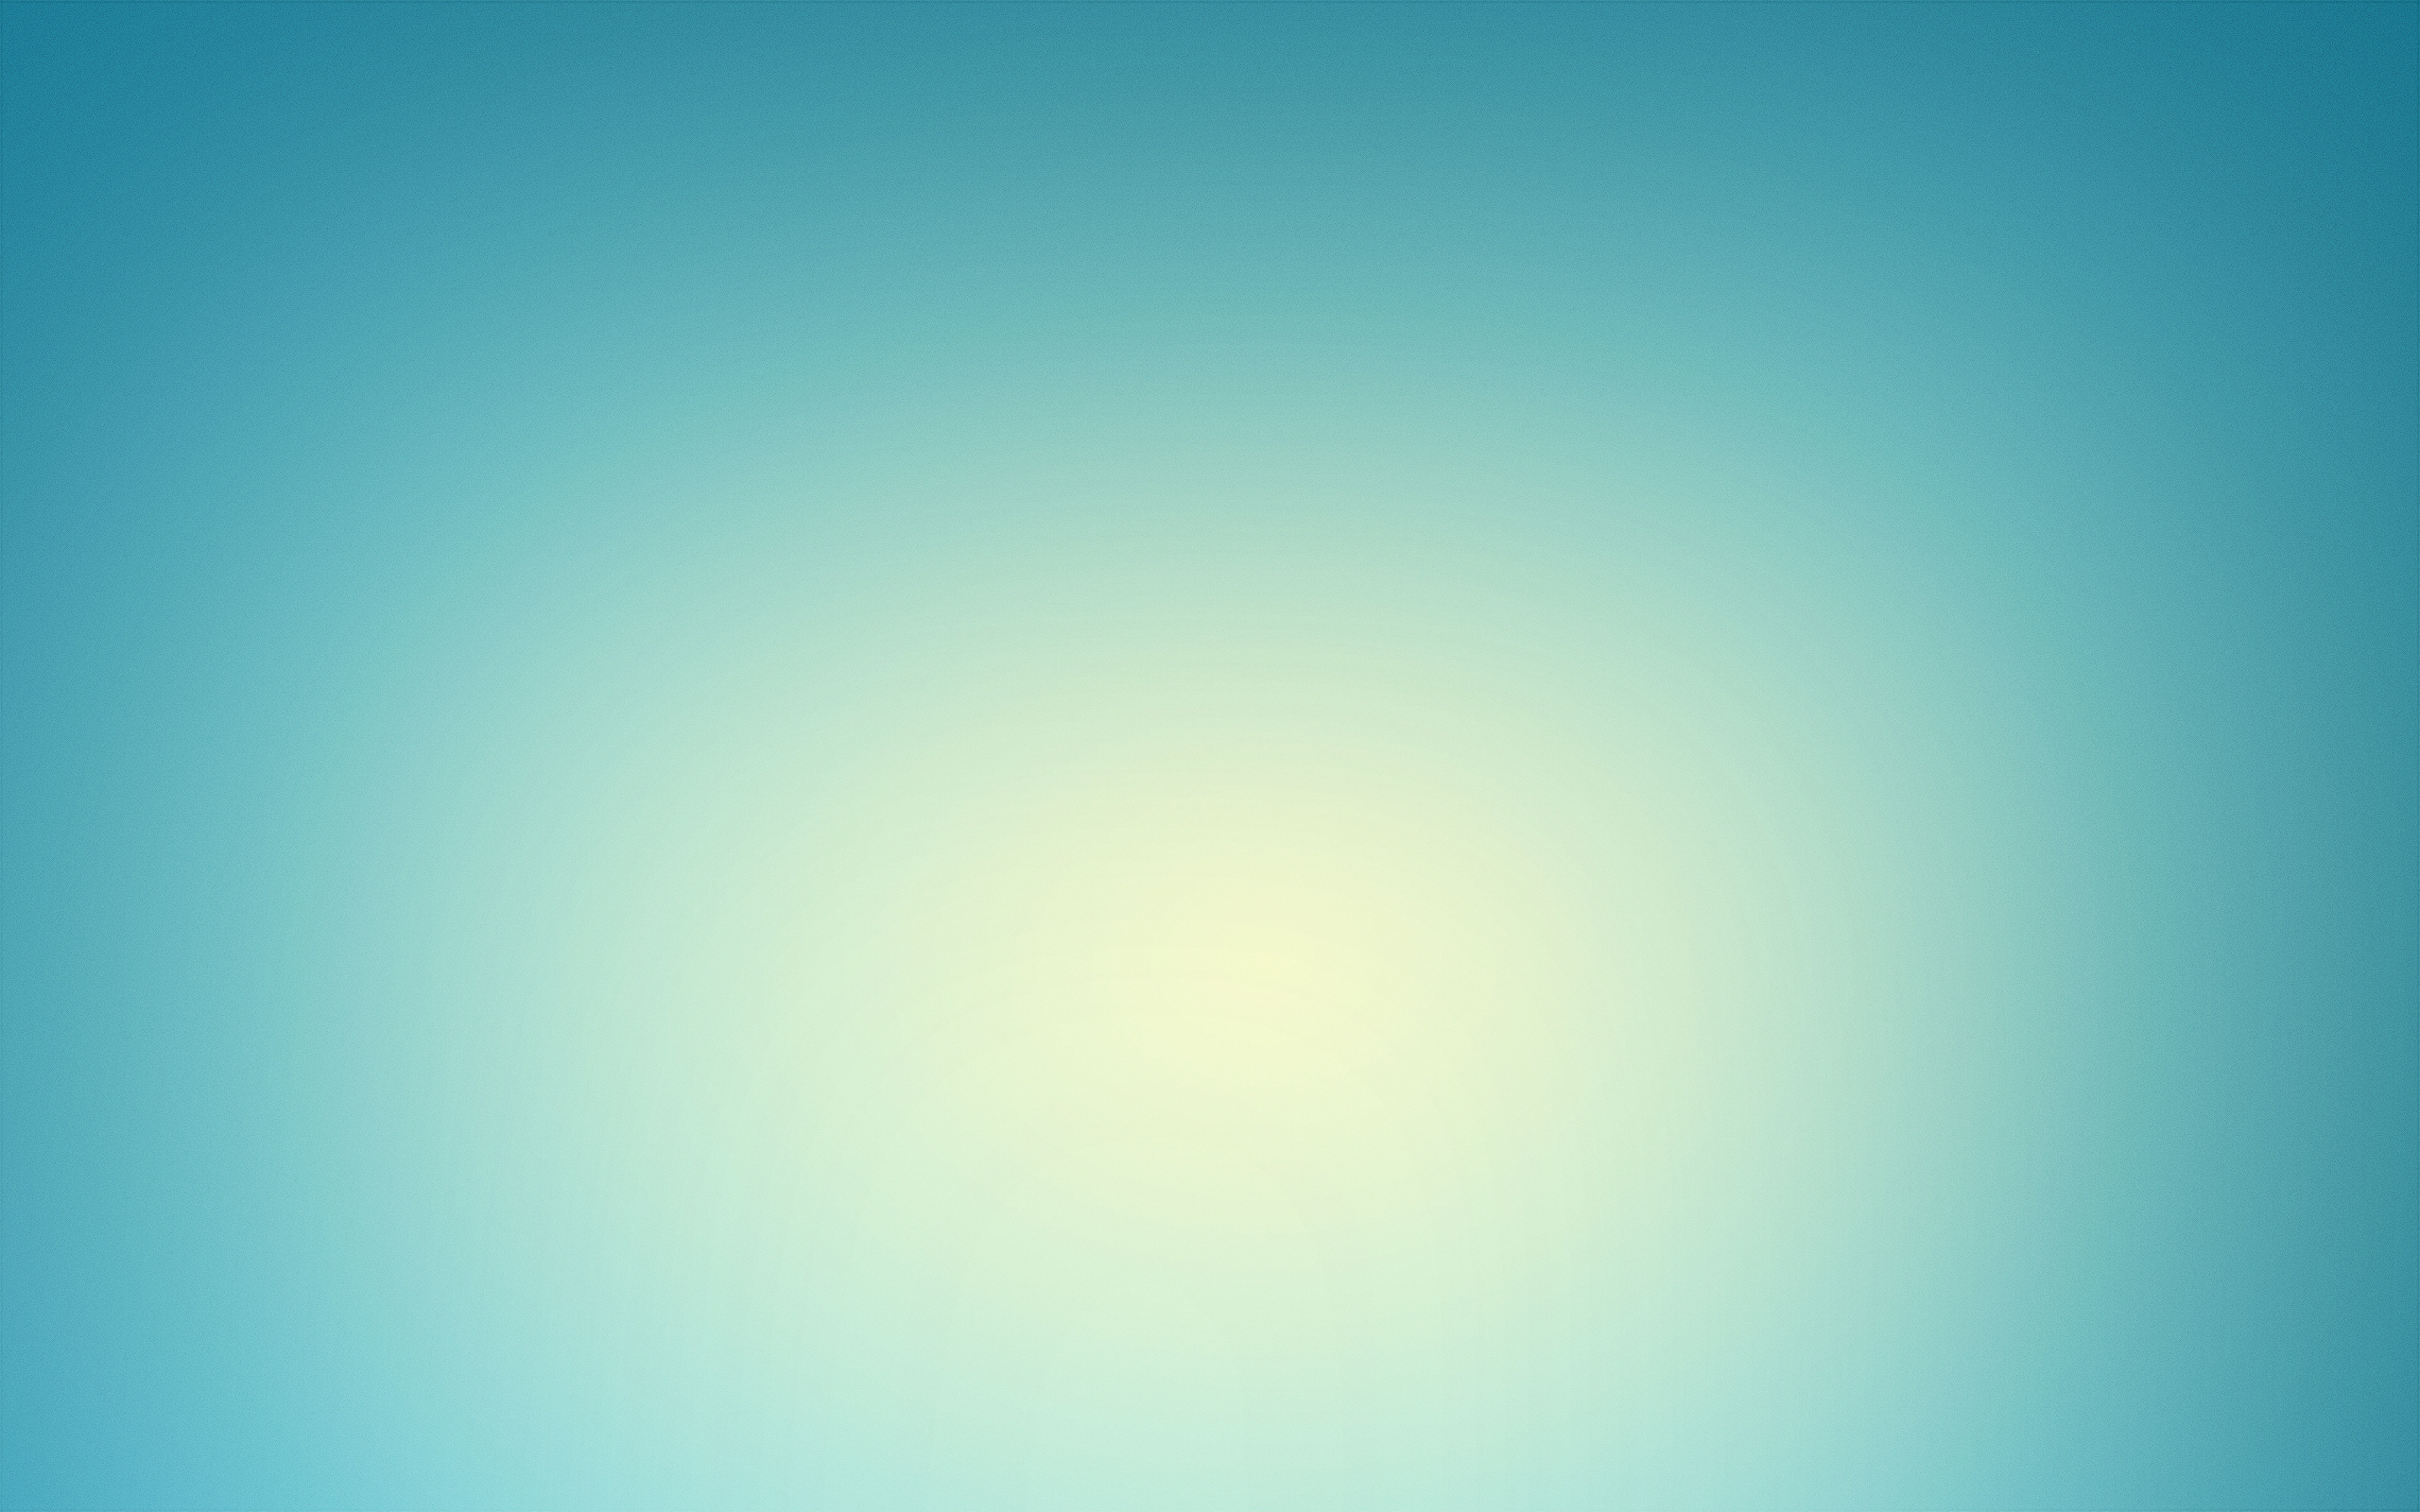 light blue abstract full HD wallpaper Wallpaper